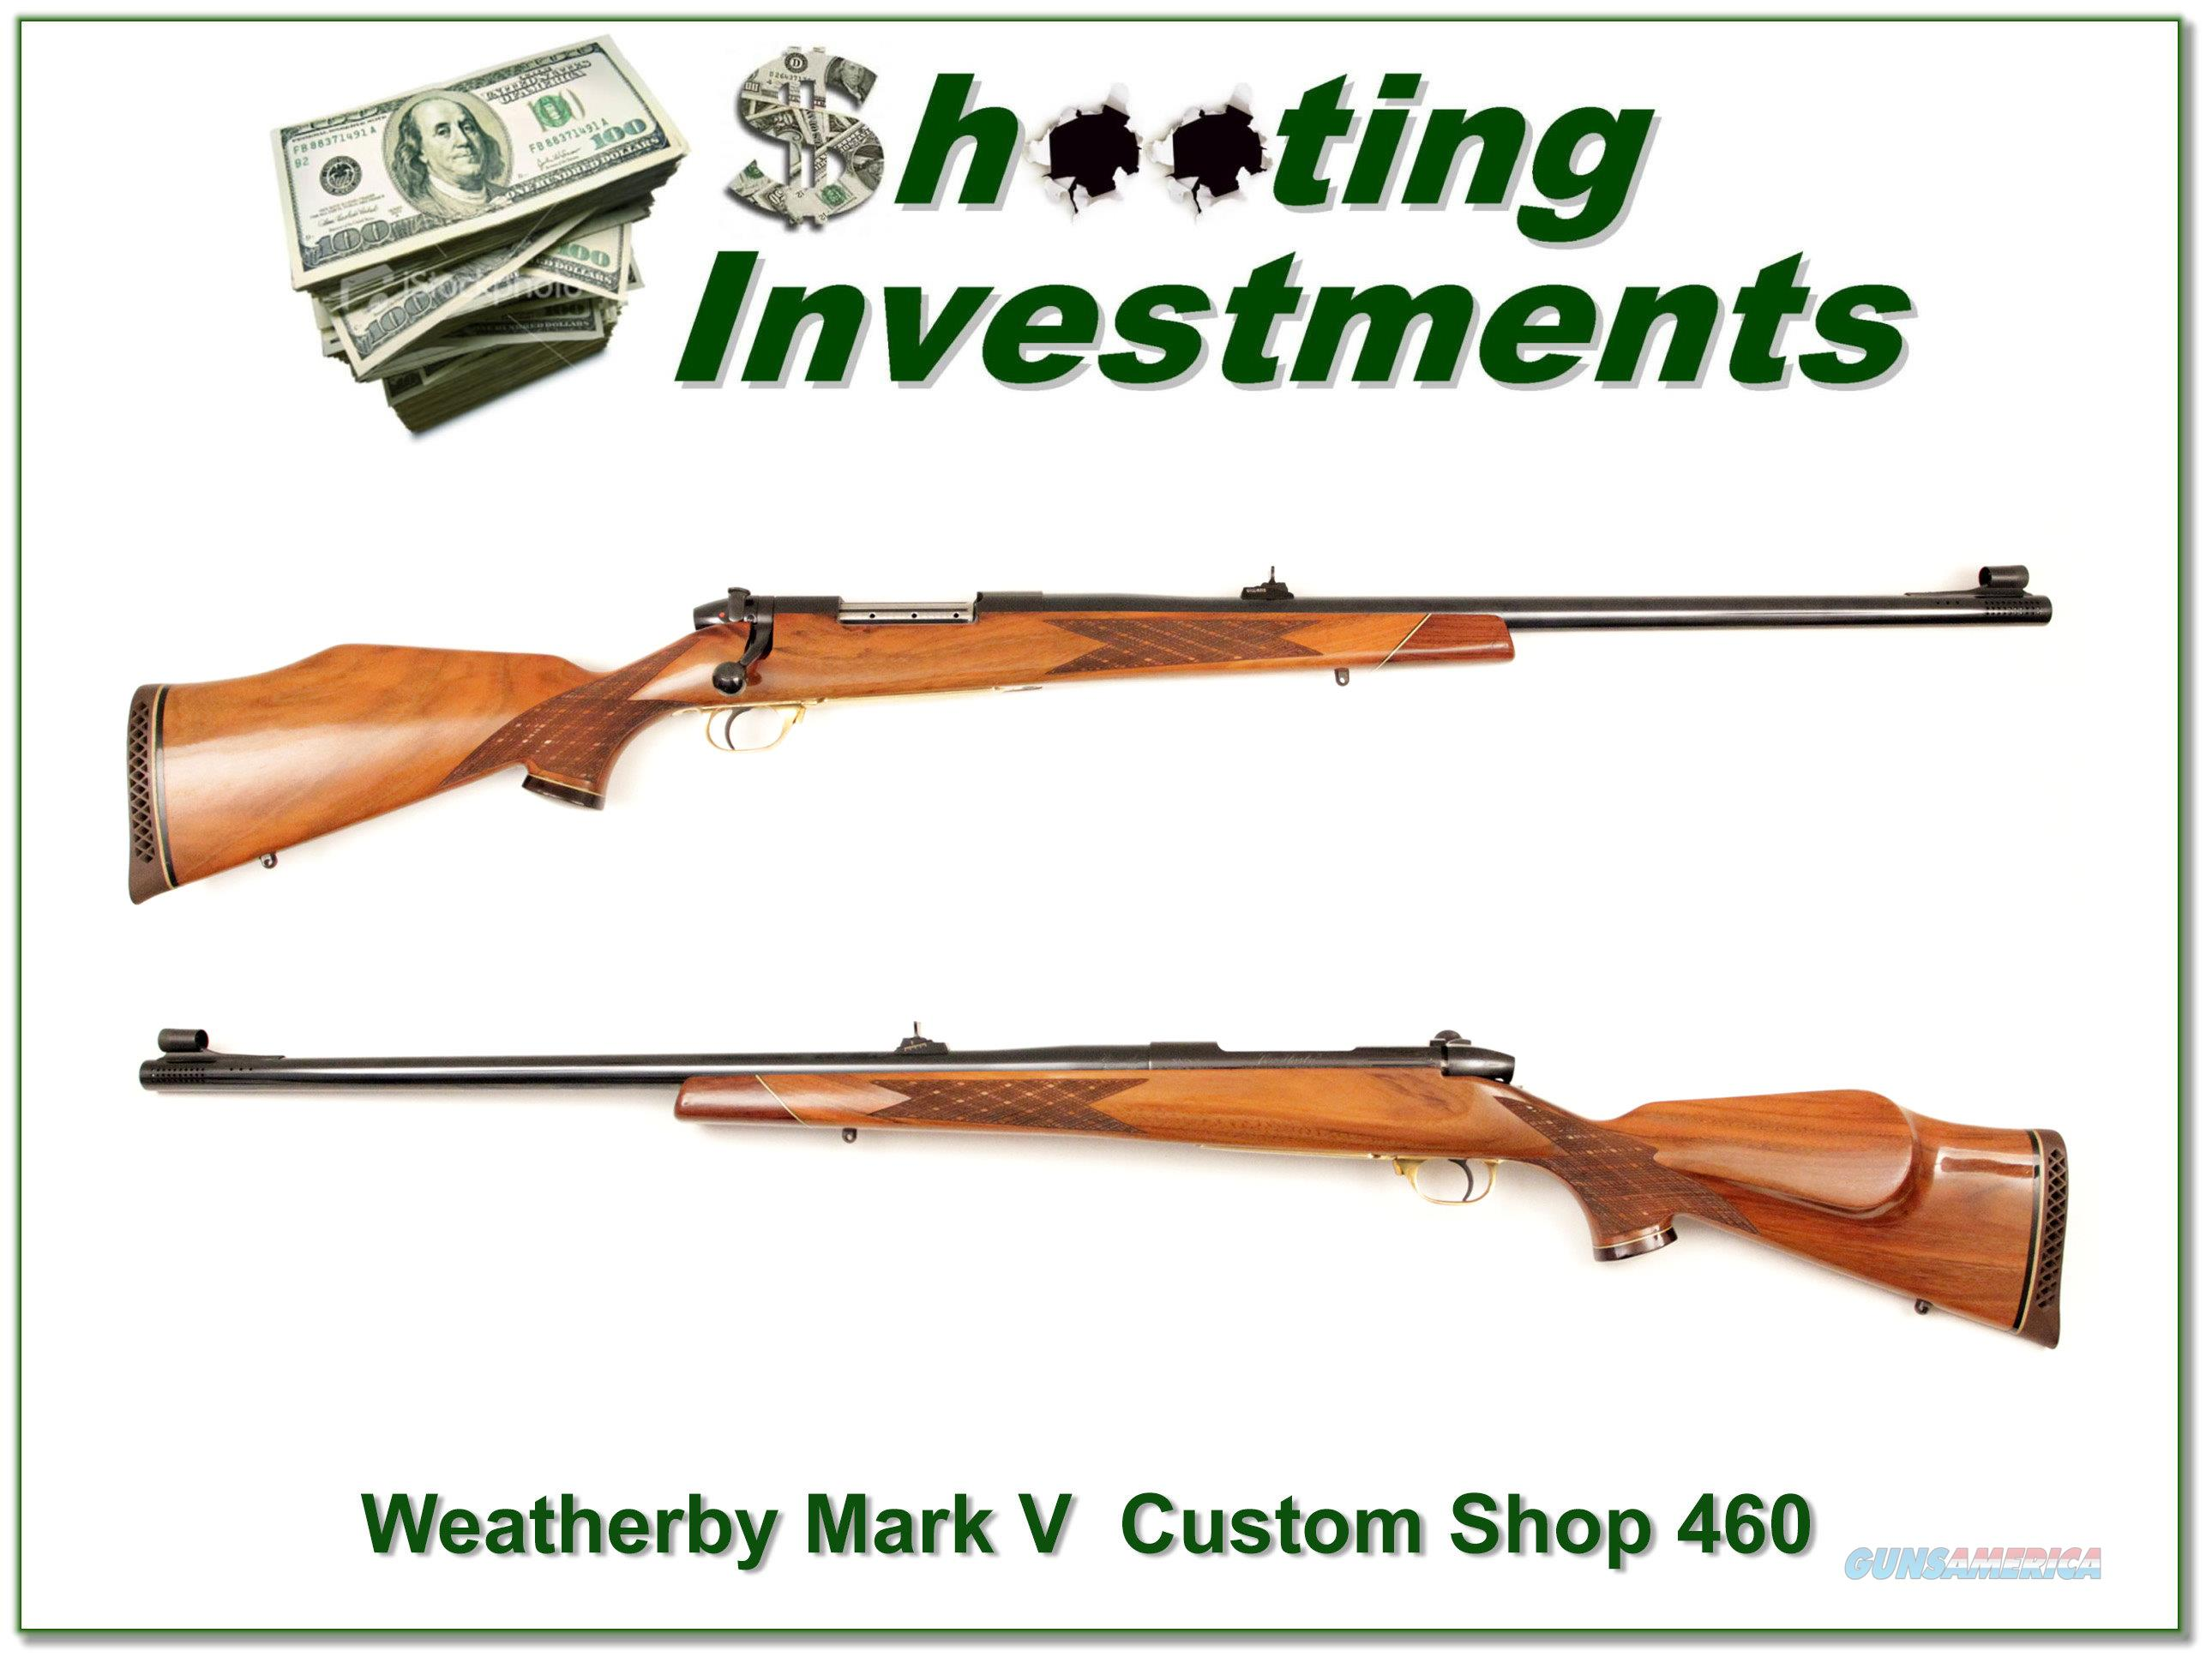 Weatherby Mark V Deluxe 460 Wthy Magnum Custom Shop  Guns > Rifles > Weatherby Rifles > Sporting